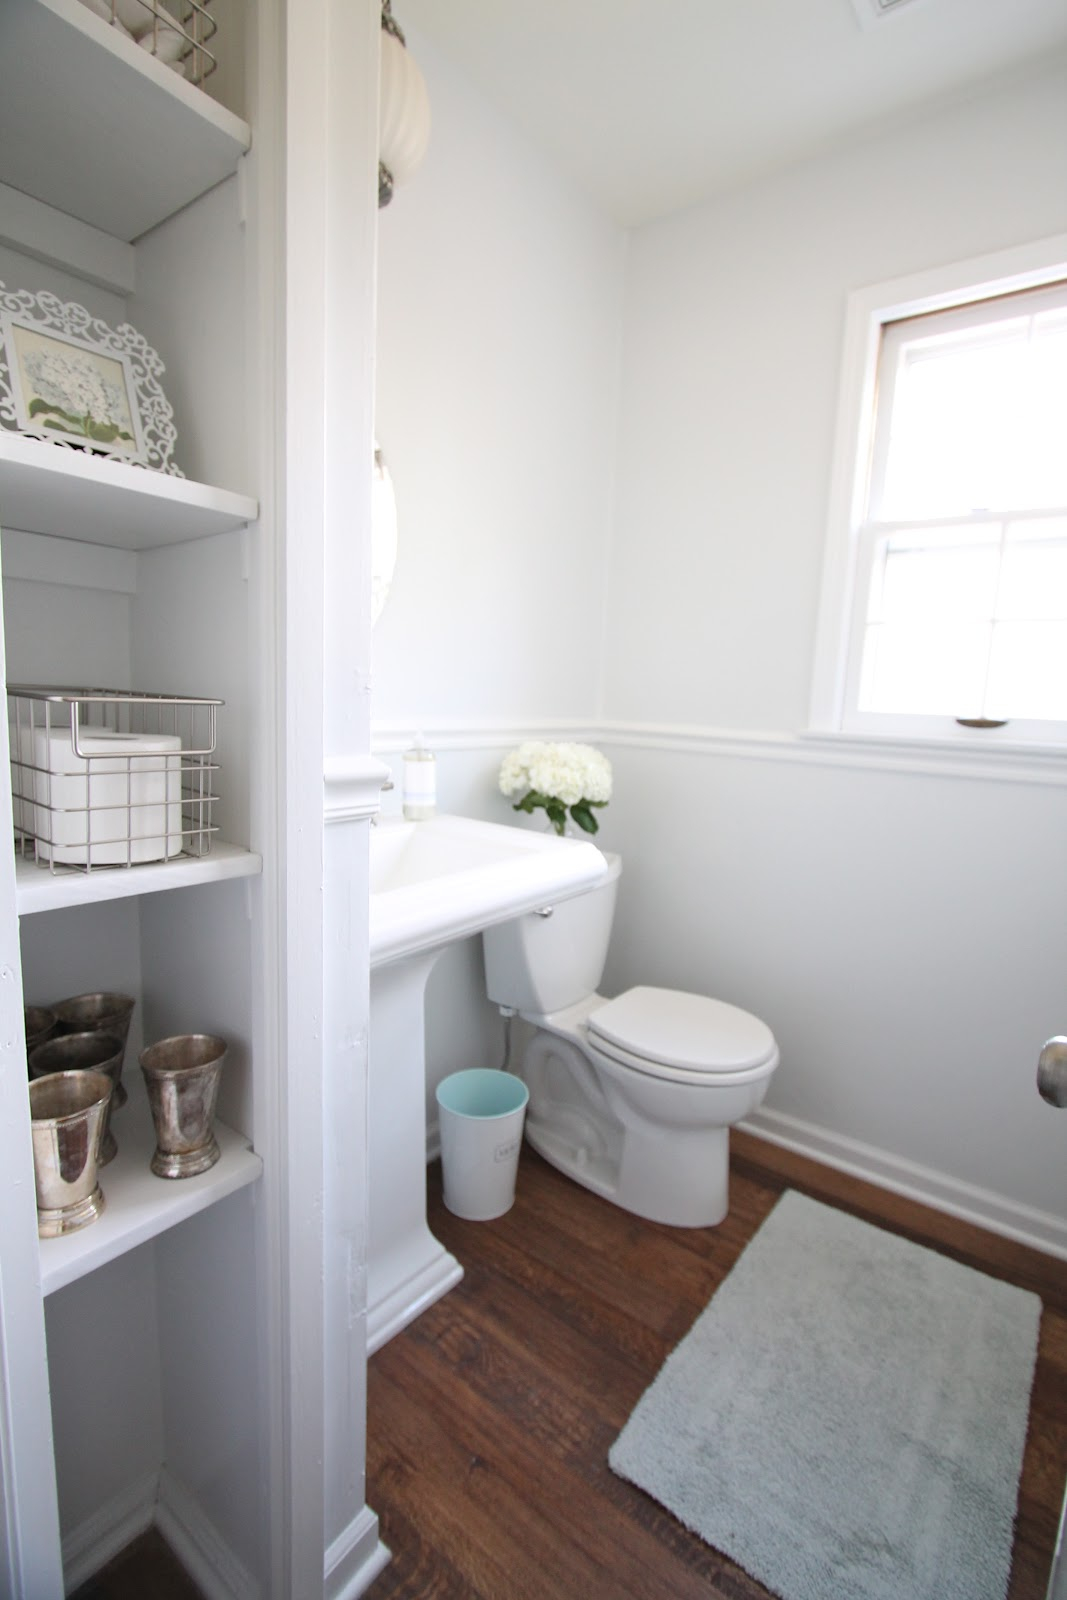 Glamorous Diy Bathroom Remodel - Julie Blanner within Bathroom Remodel Diy